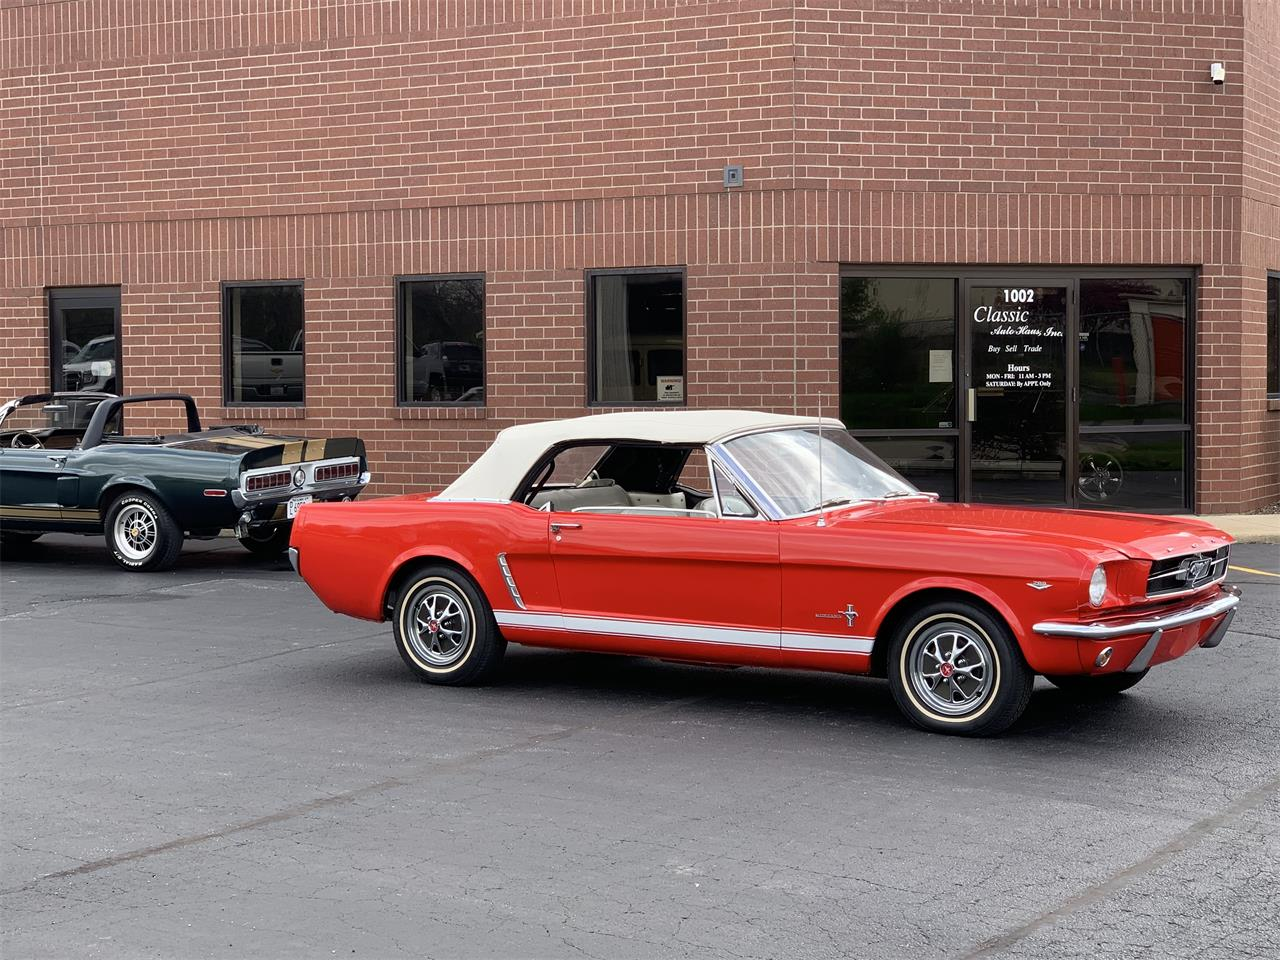 Large Picture of 1965 Ford Mustang located in Illinois - $24,995.00 - Q2DD